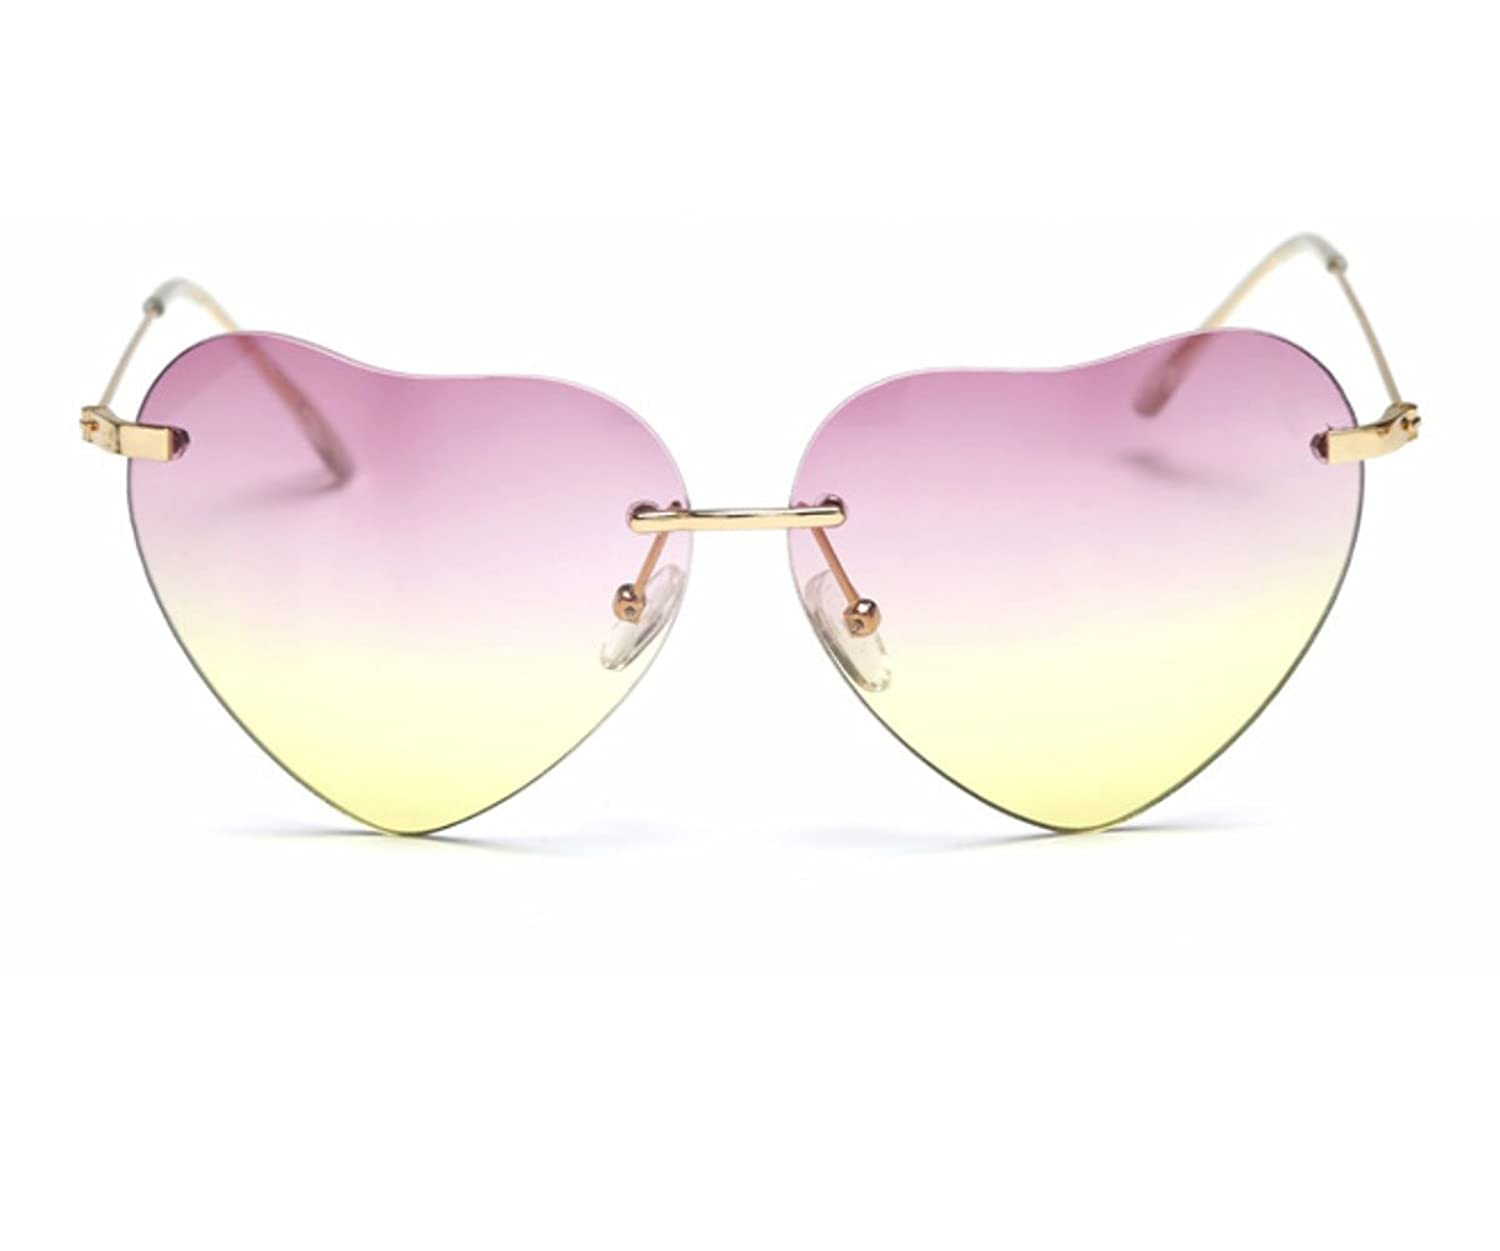 Heartisan Super Cute Heart Shaped Rimless Bicolor Lens Sunglasses